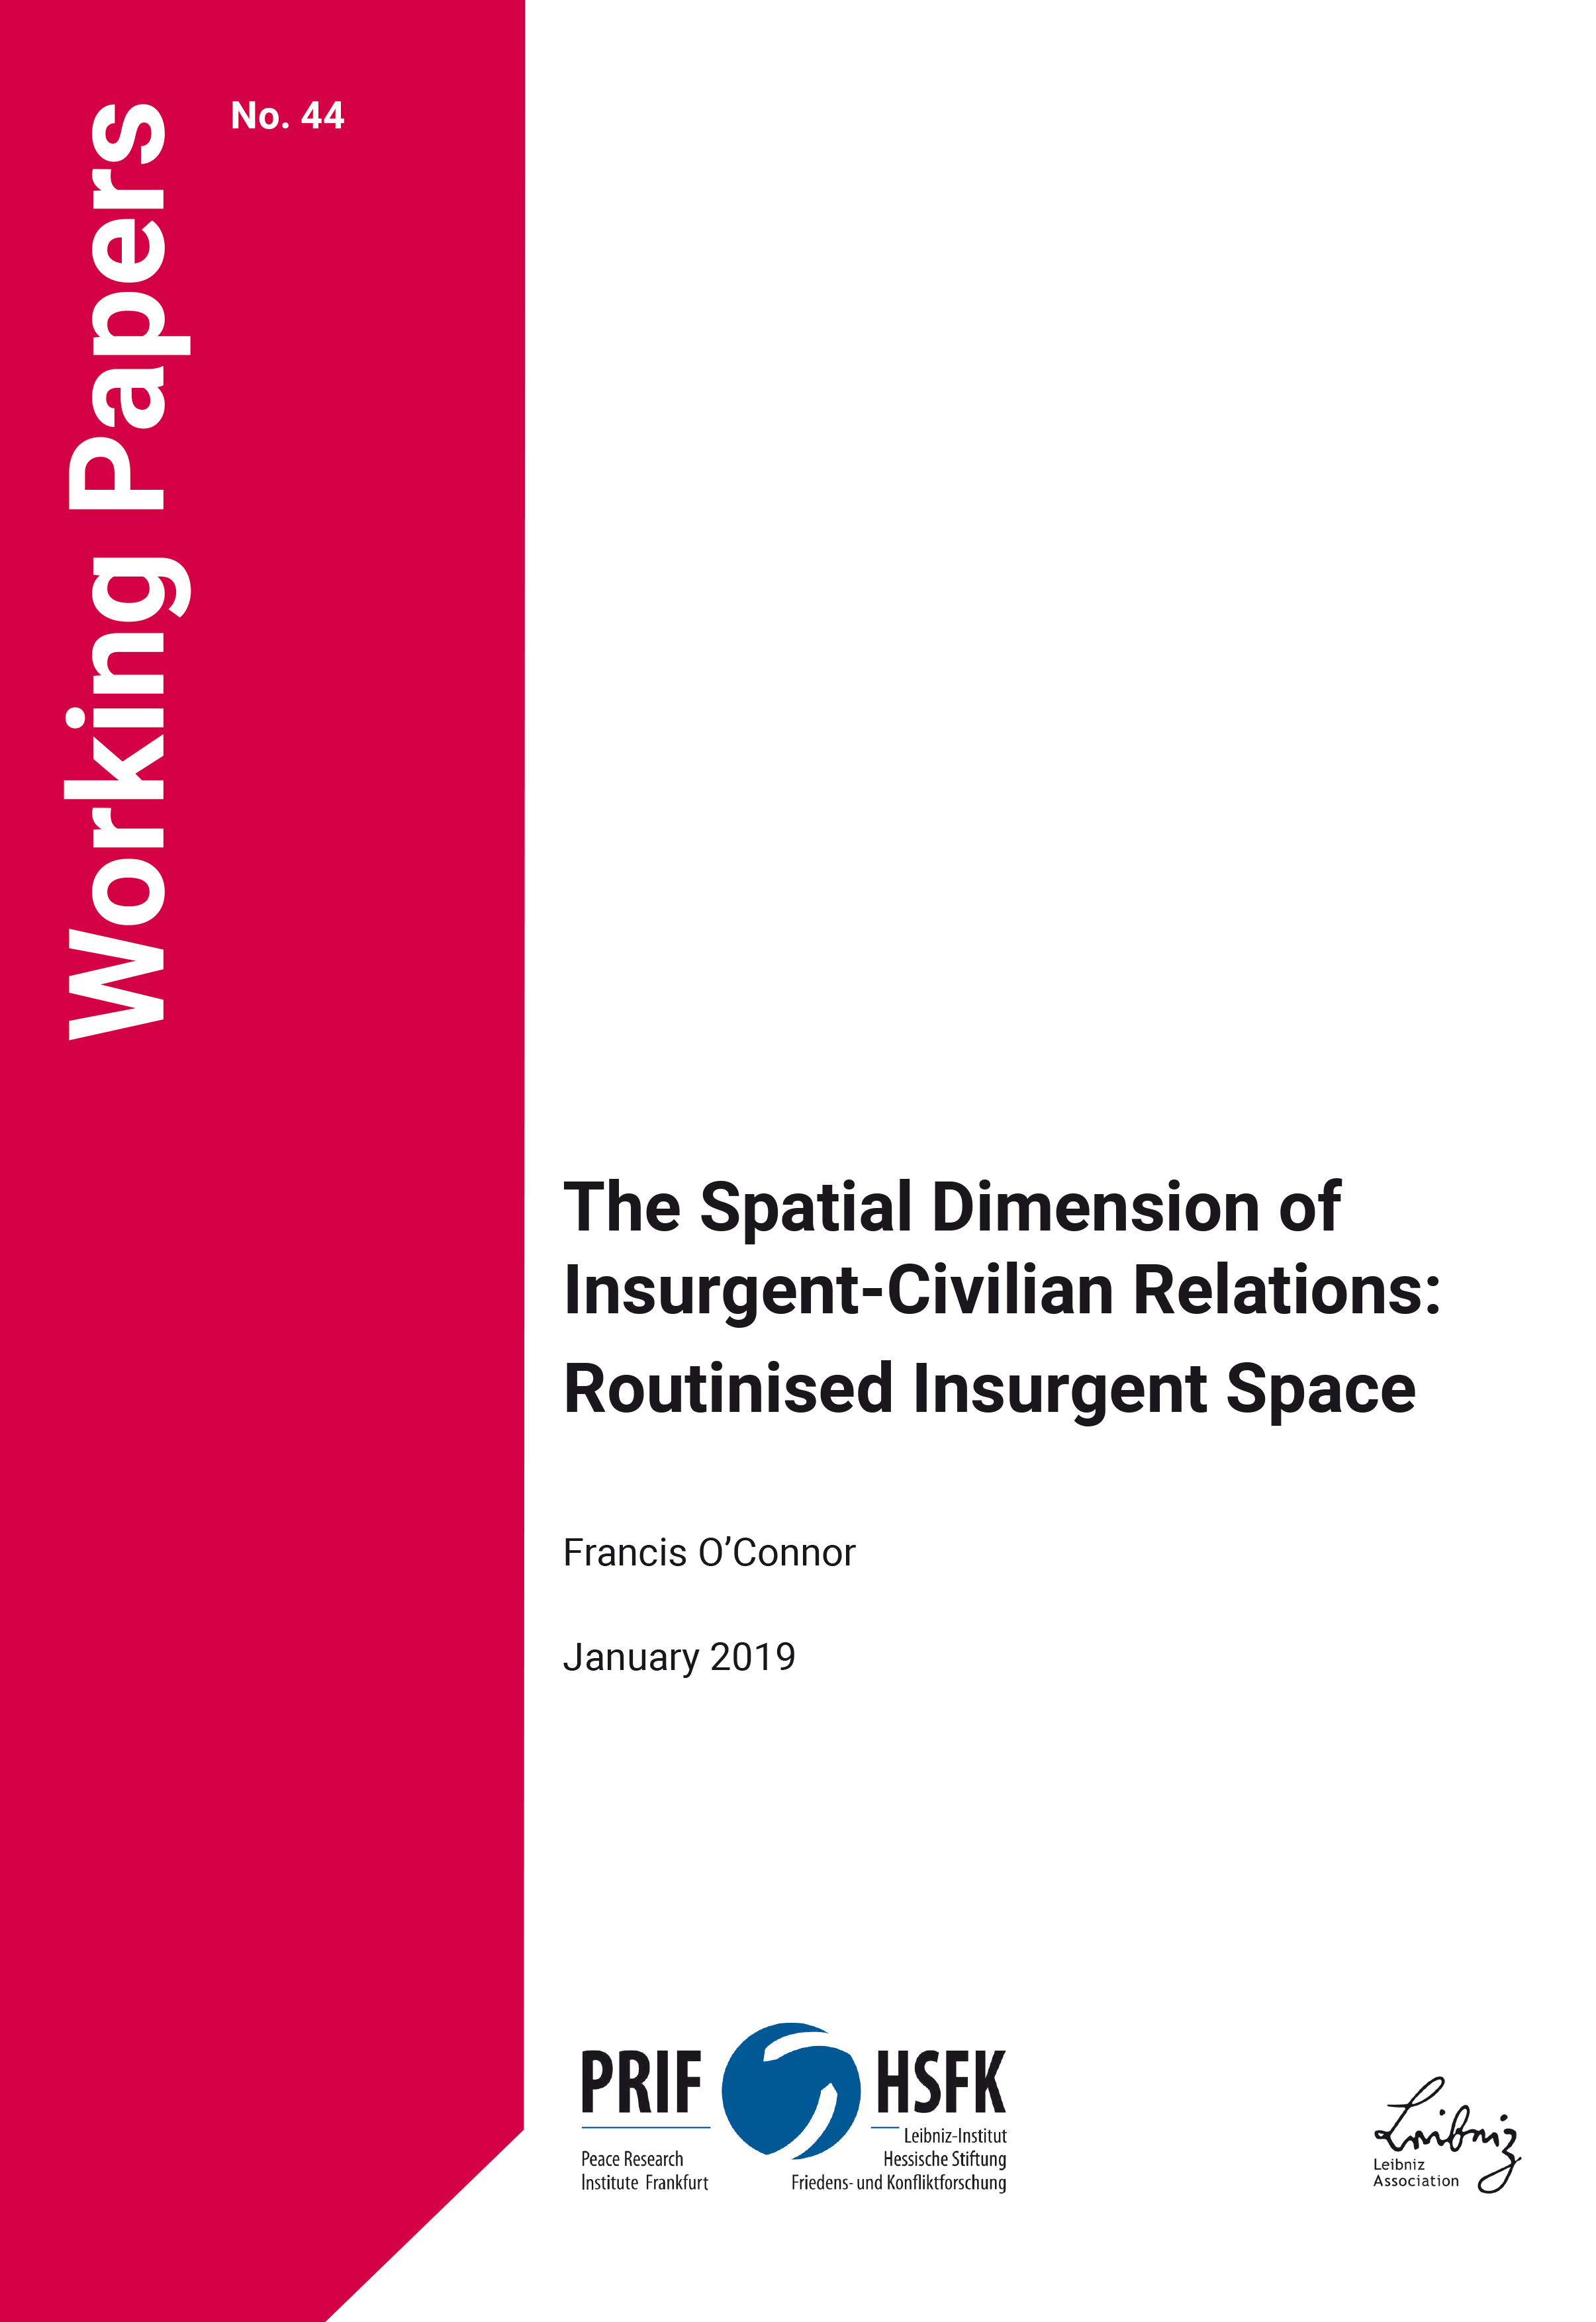 Download: The Spatial Dimension of Insurgent-Civilian Relations: Routinised Insurgent Space